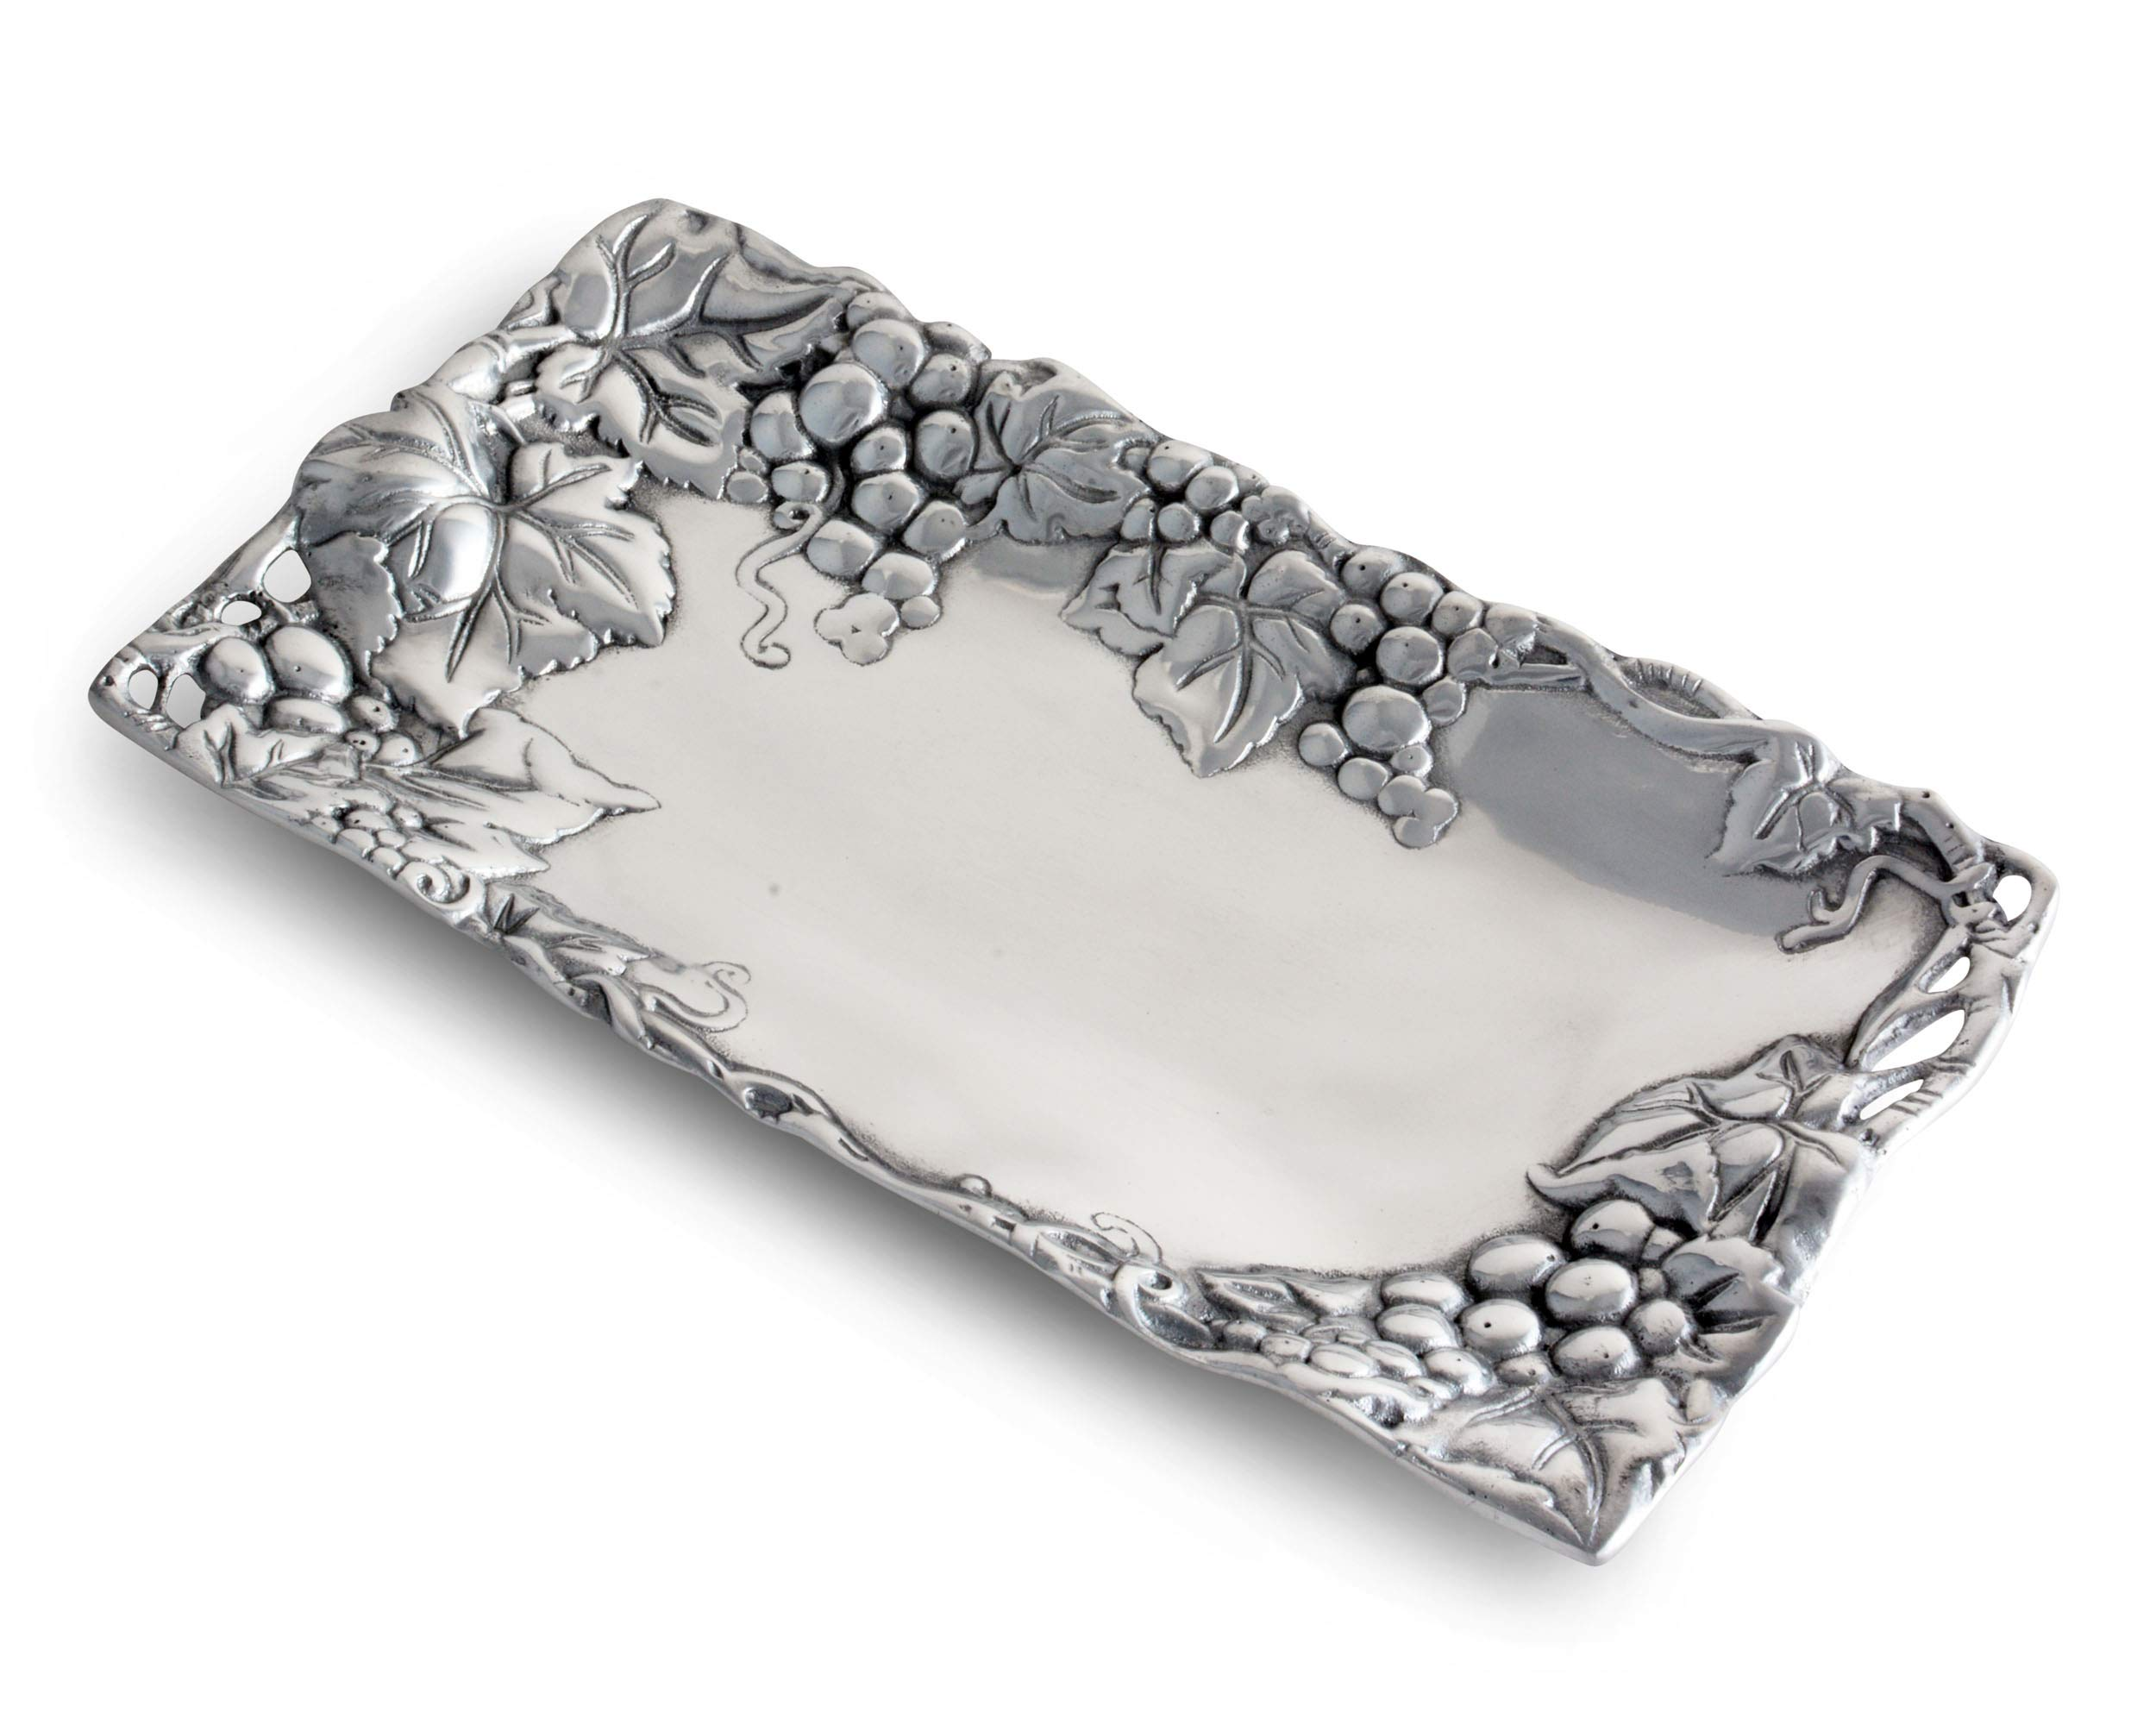 Arthur Court Metal Bread Serving Tray Grape Pattern Sand Casted in Aluminum with Artisan Quality Hand Polished Design Tanish-Free, 6 inch x 12 inch